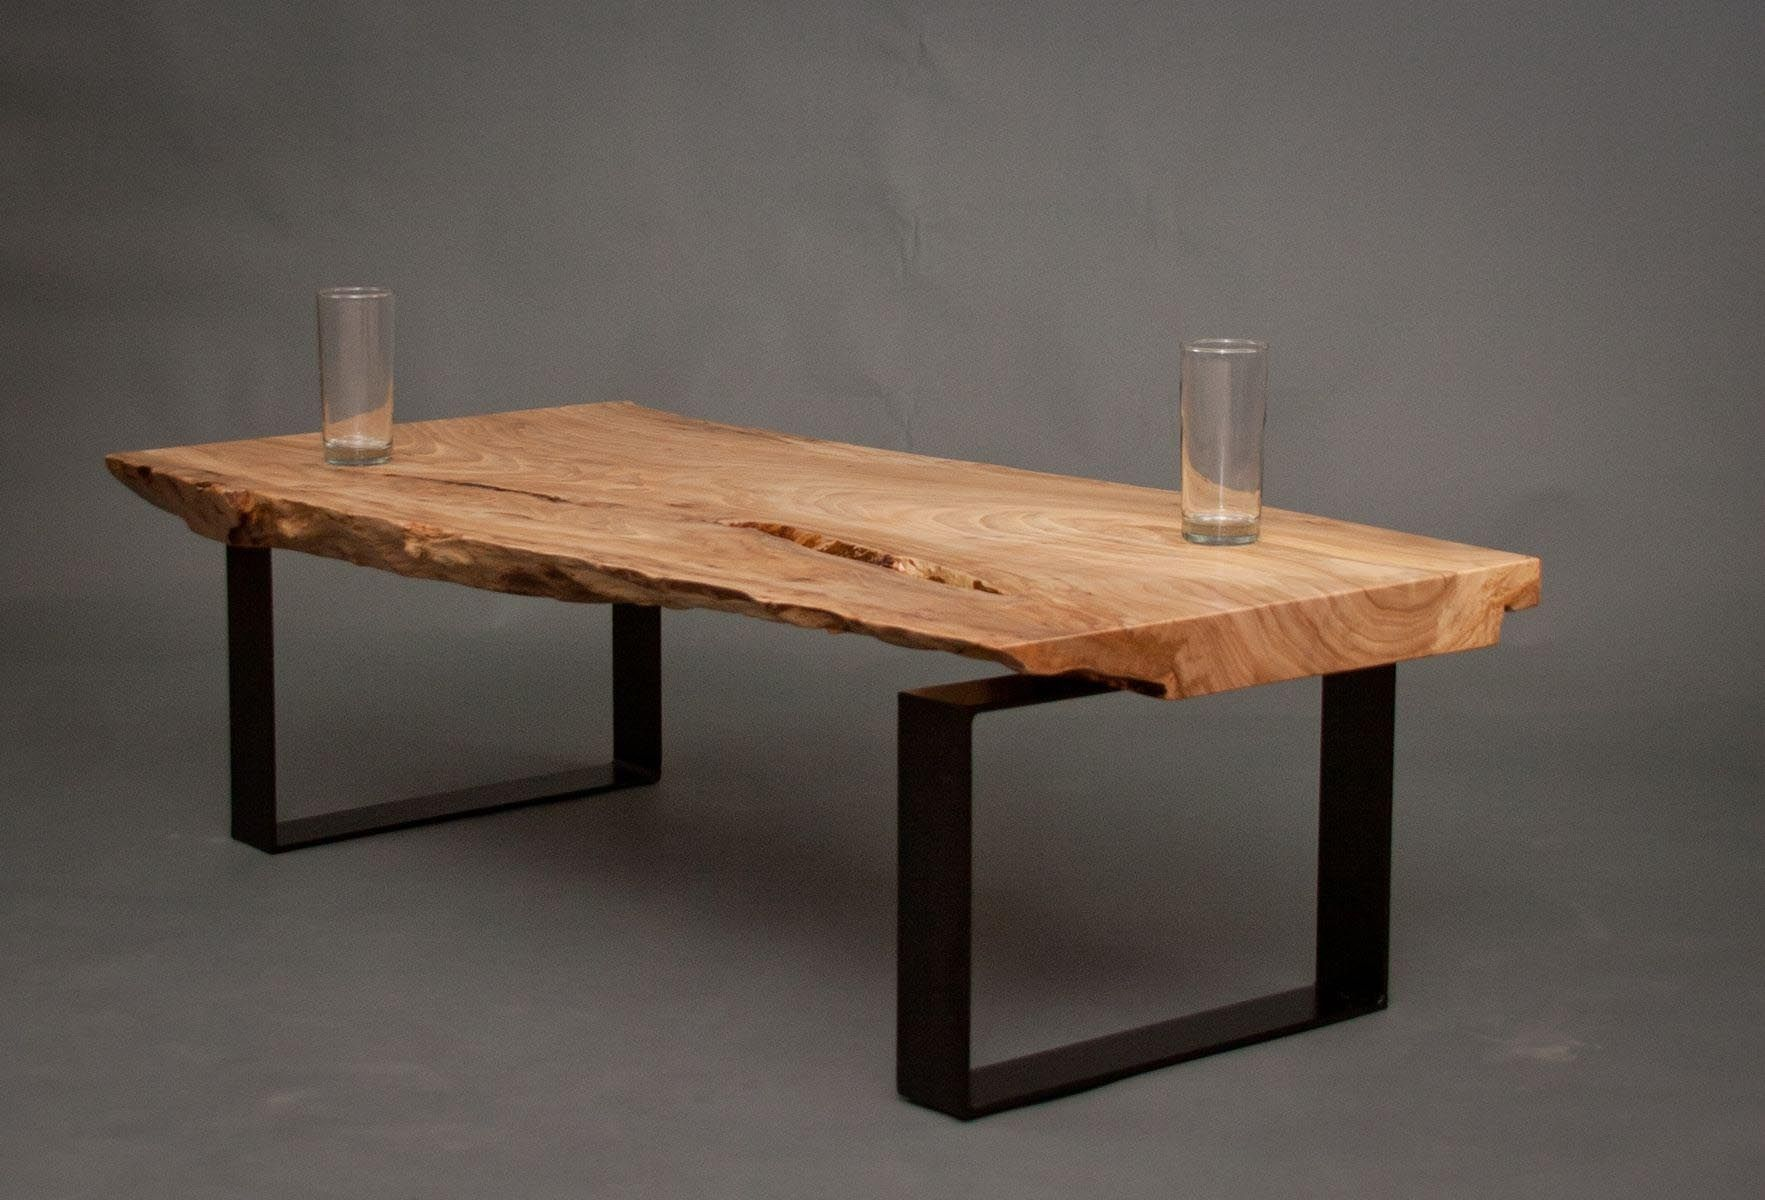 Wood Slab Coffee Table Reclaimed